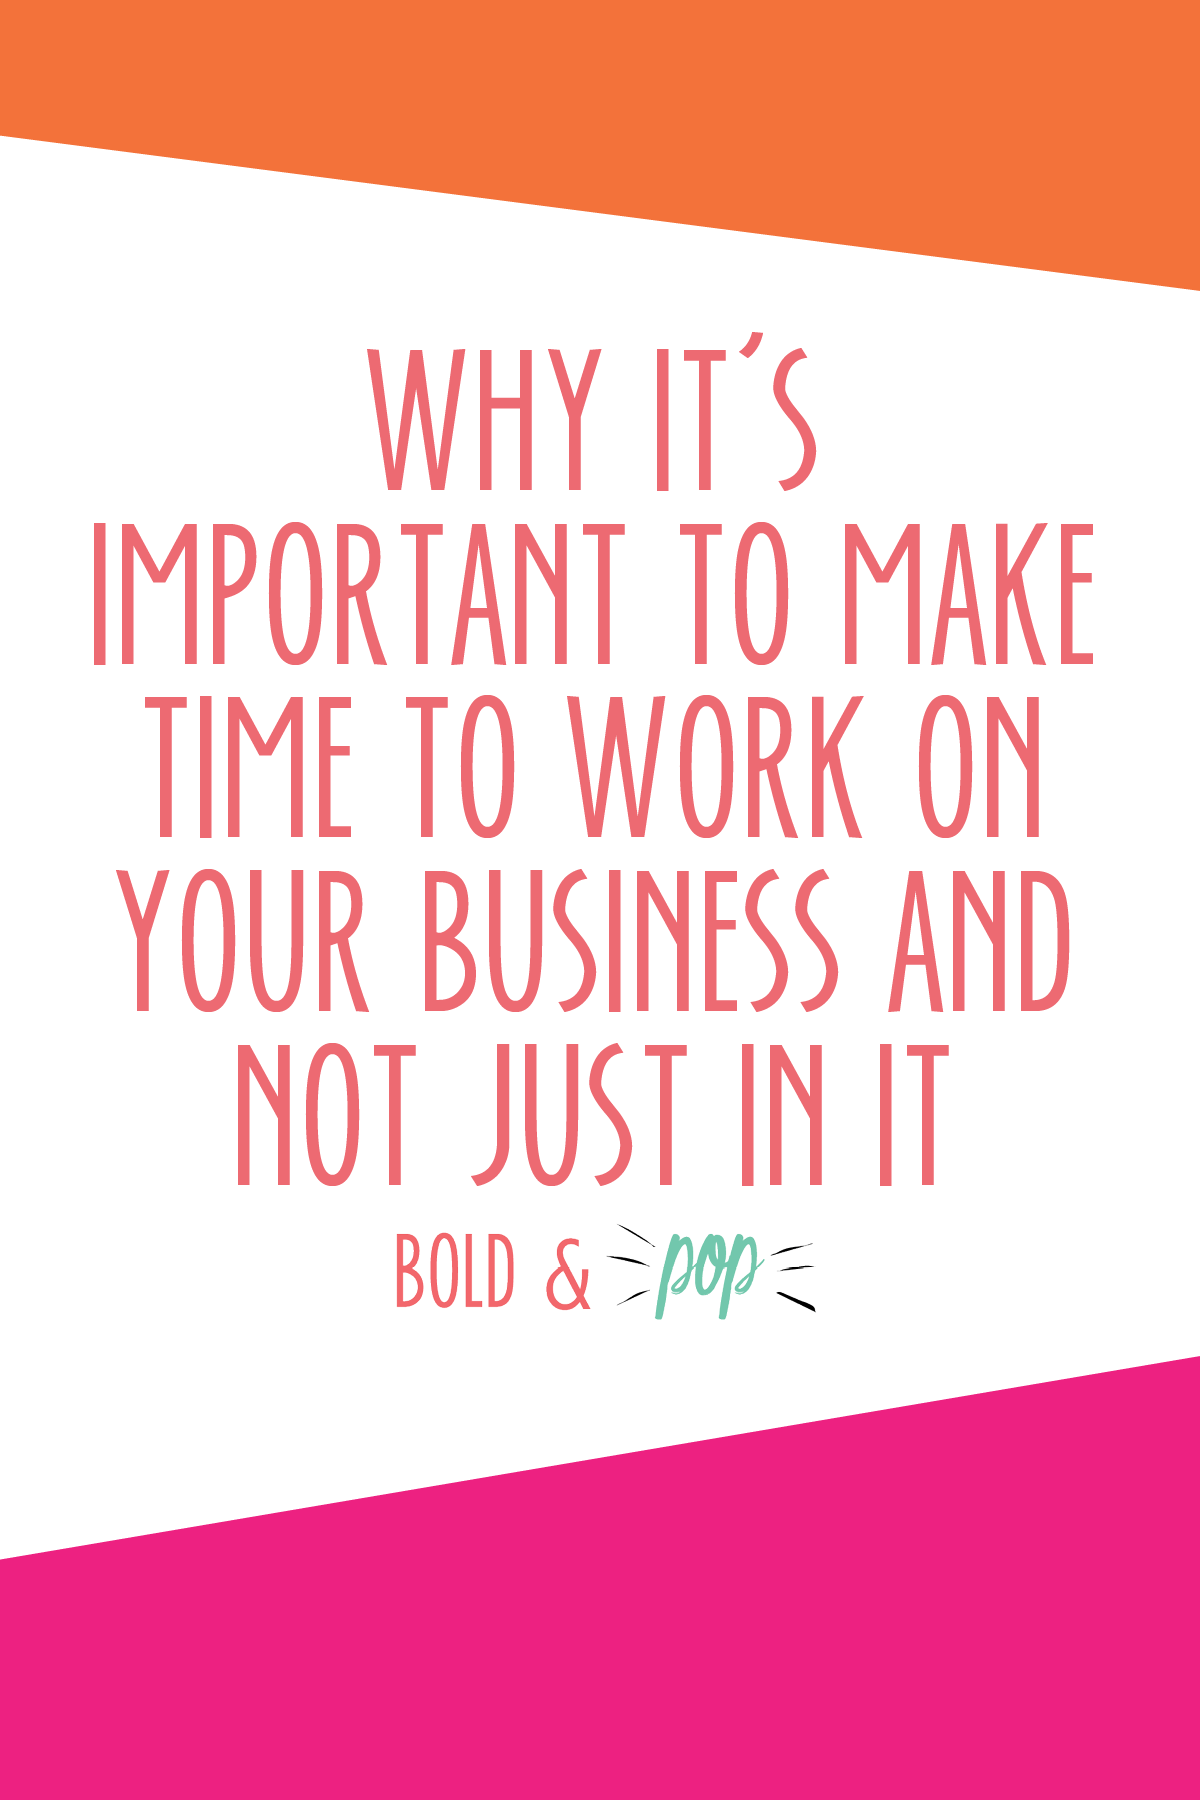 Bold & Pop :: Why it's Important to Make Time to Work ON Your Business and not Just IN it